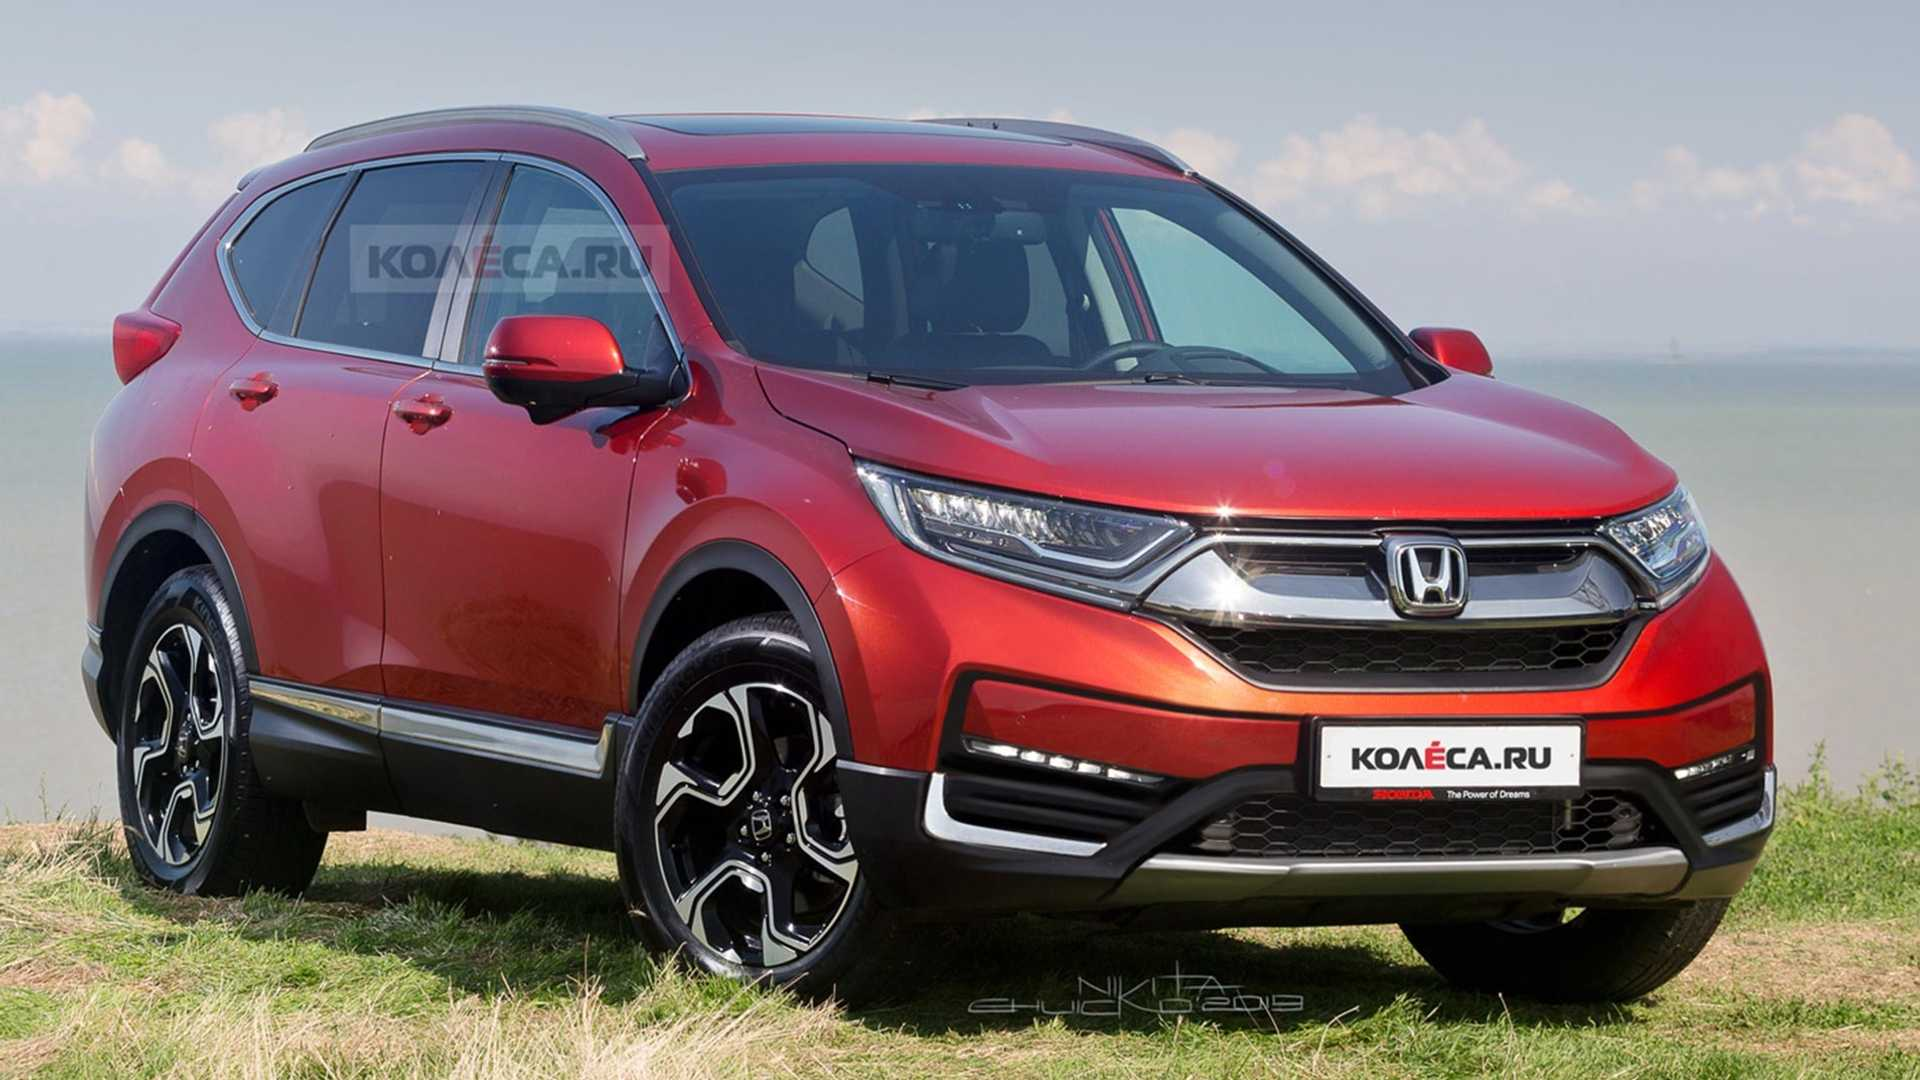 88 The 2020 Honda Crv Release Date First Drive for 2020 Honda Crv Release Date